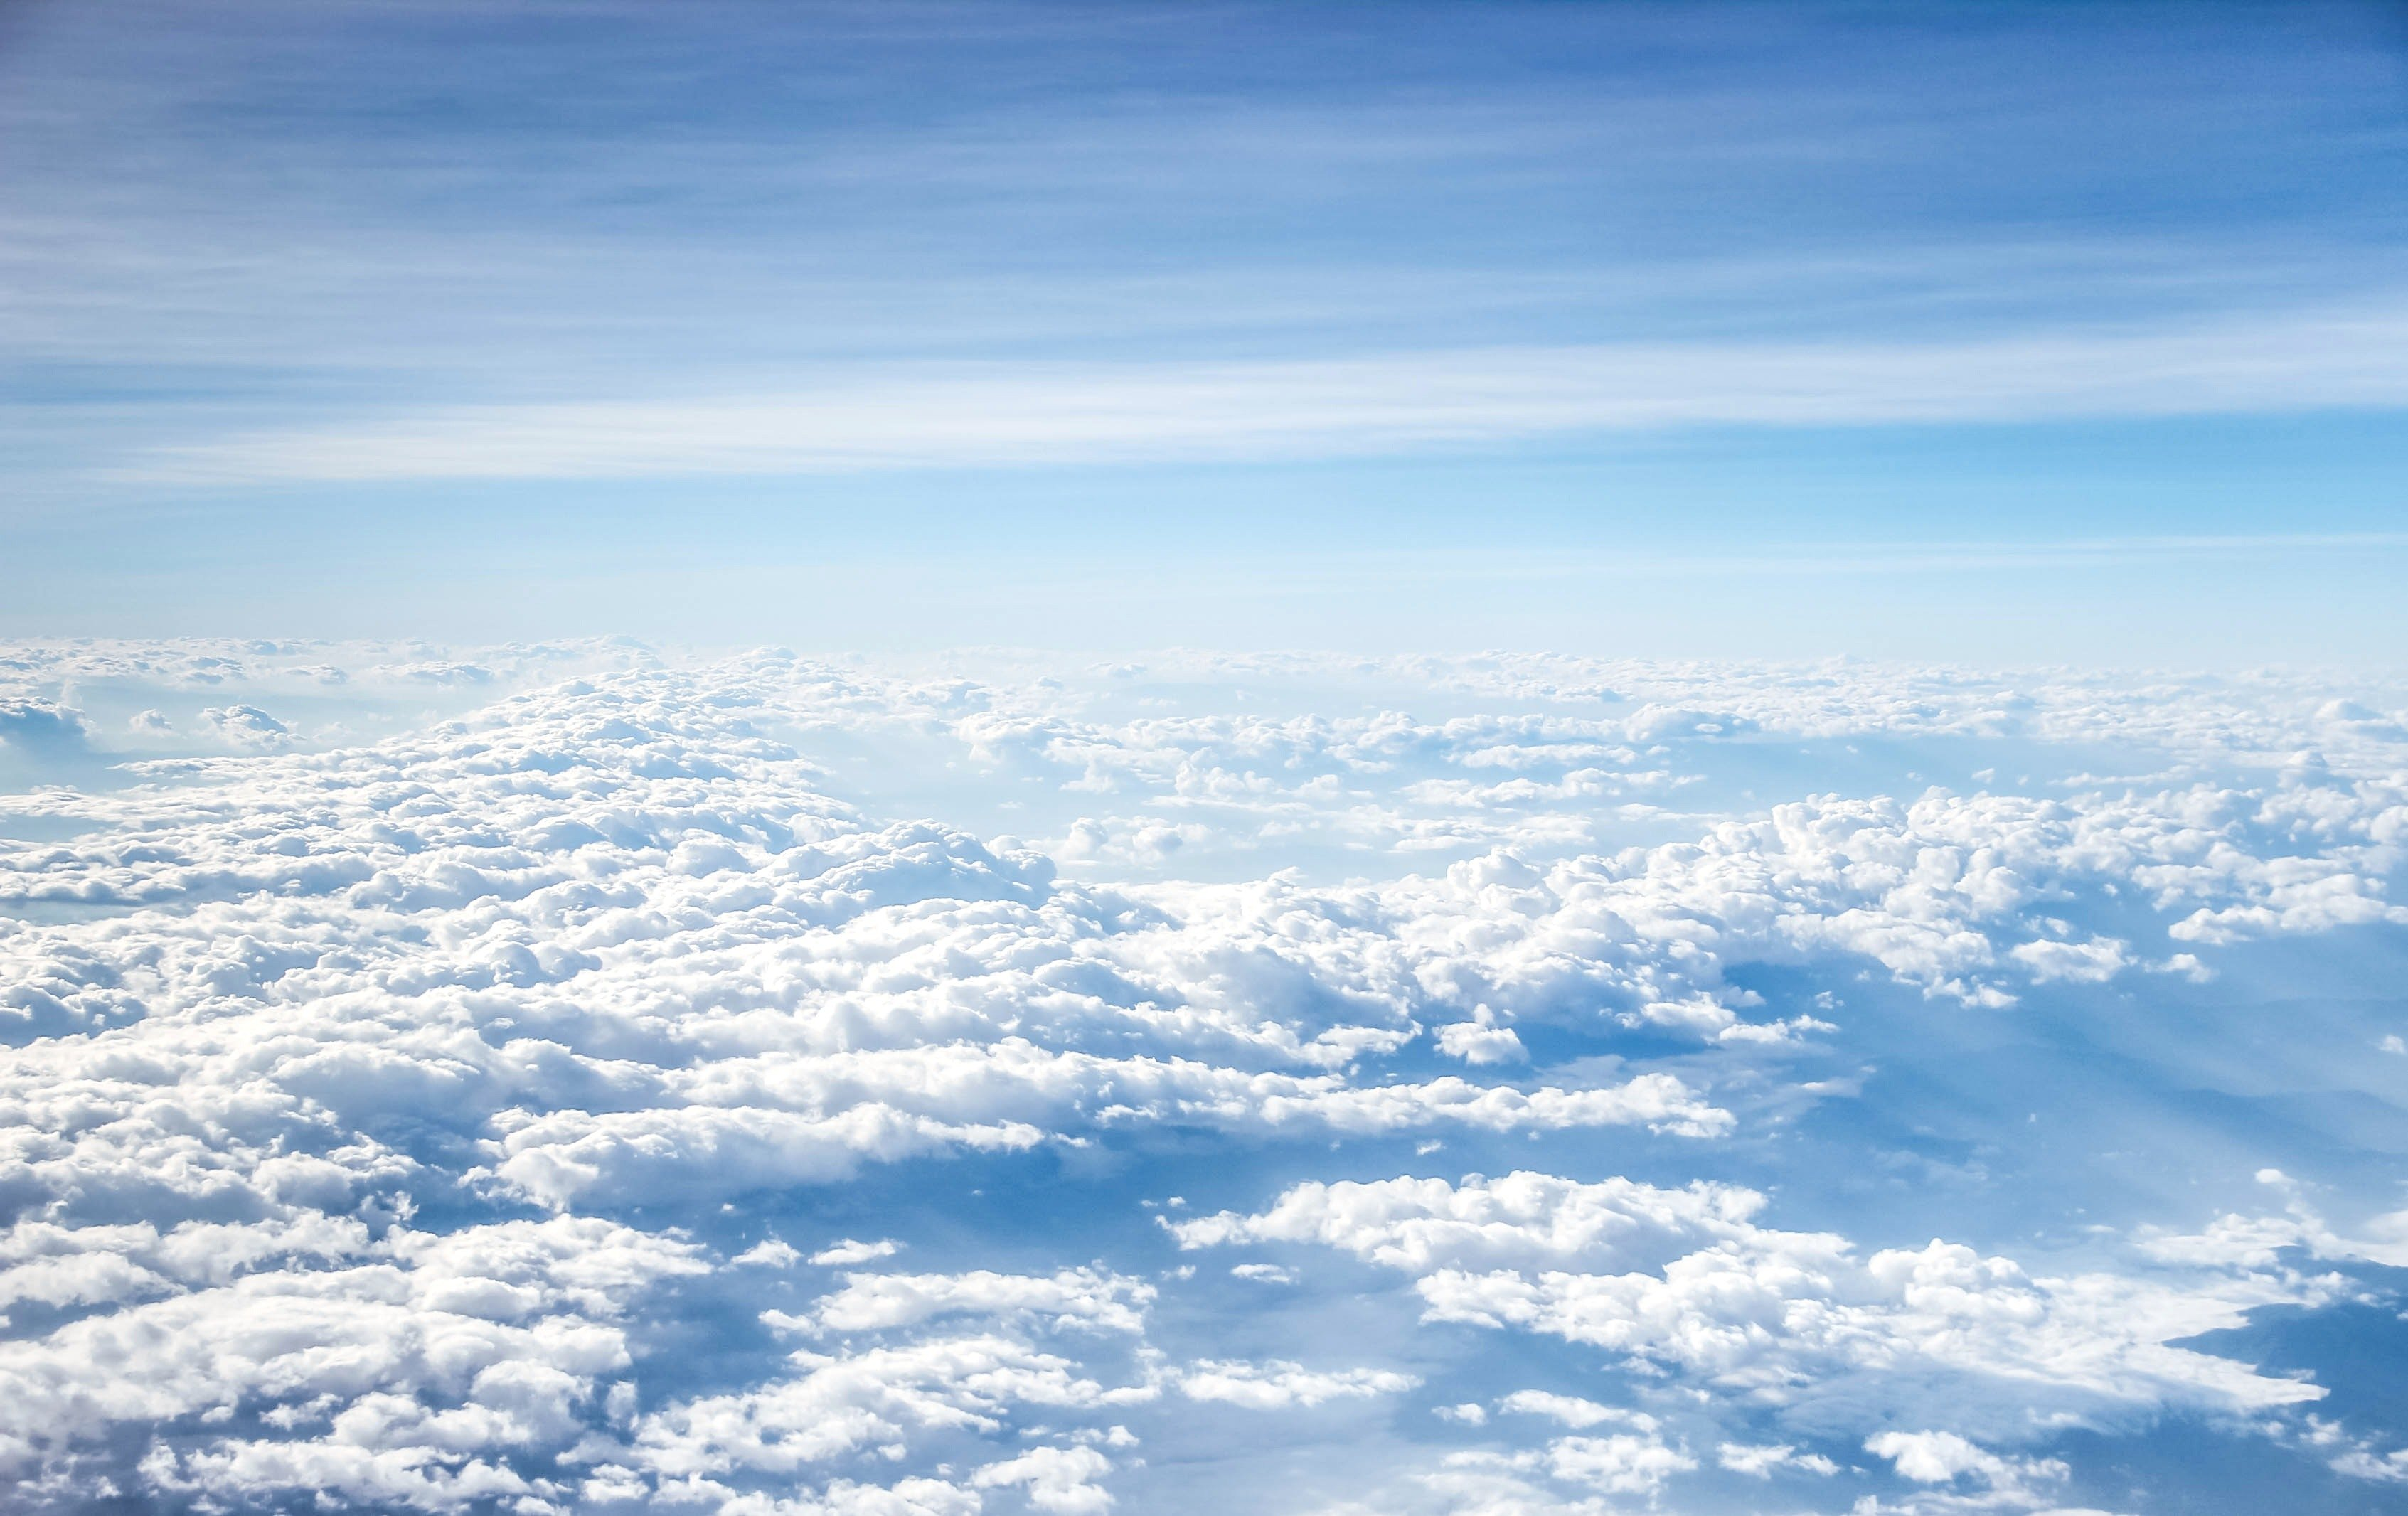 Heavenly clouds. | Source: Pexels